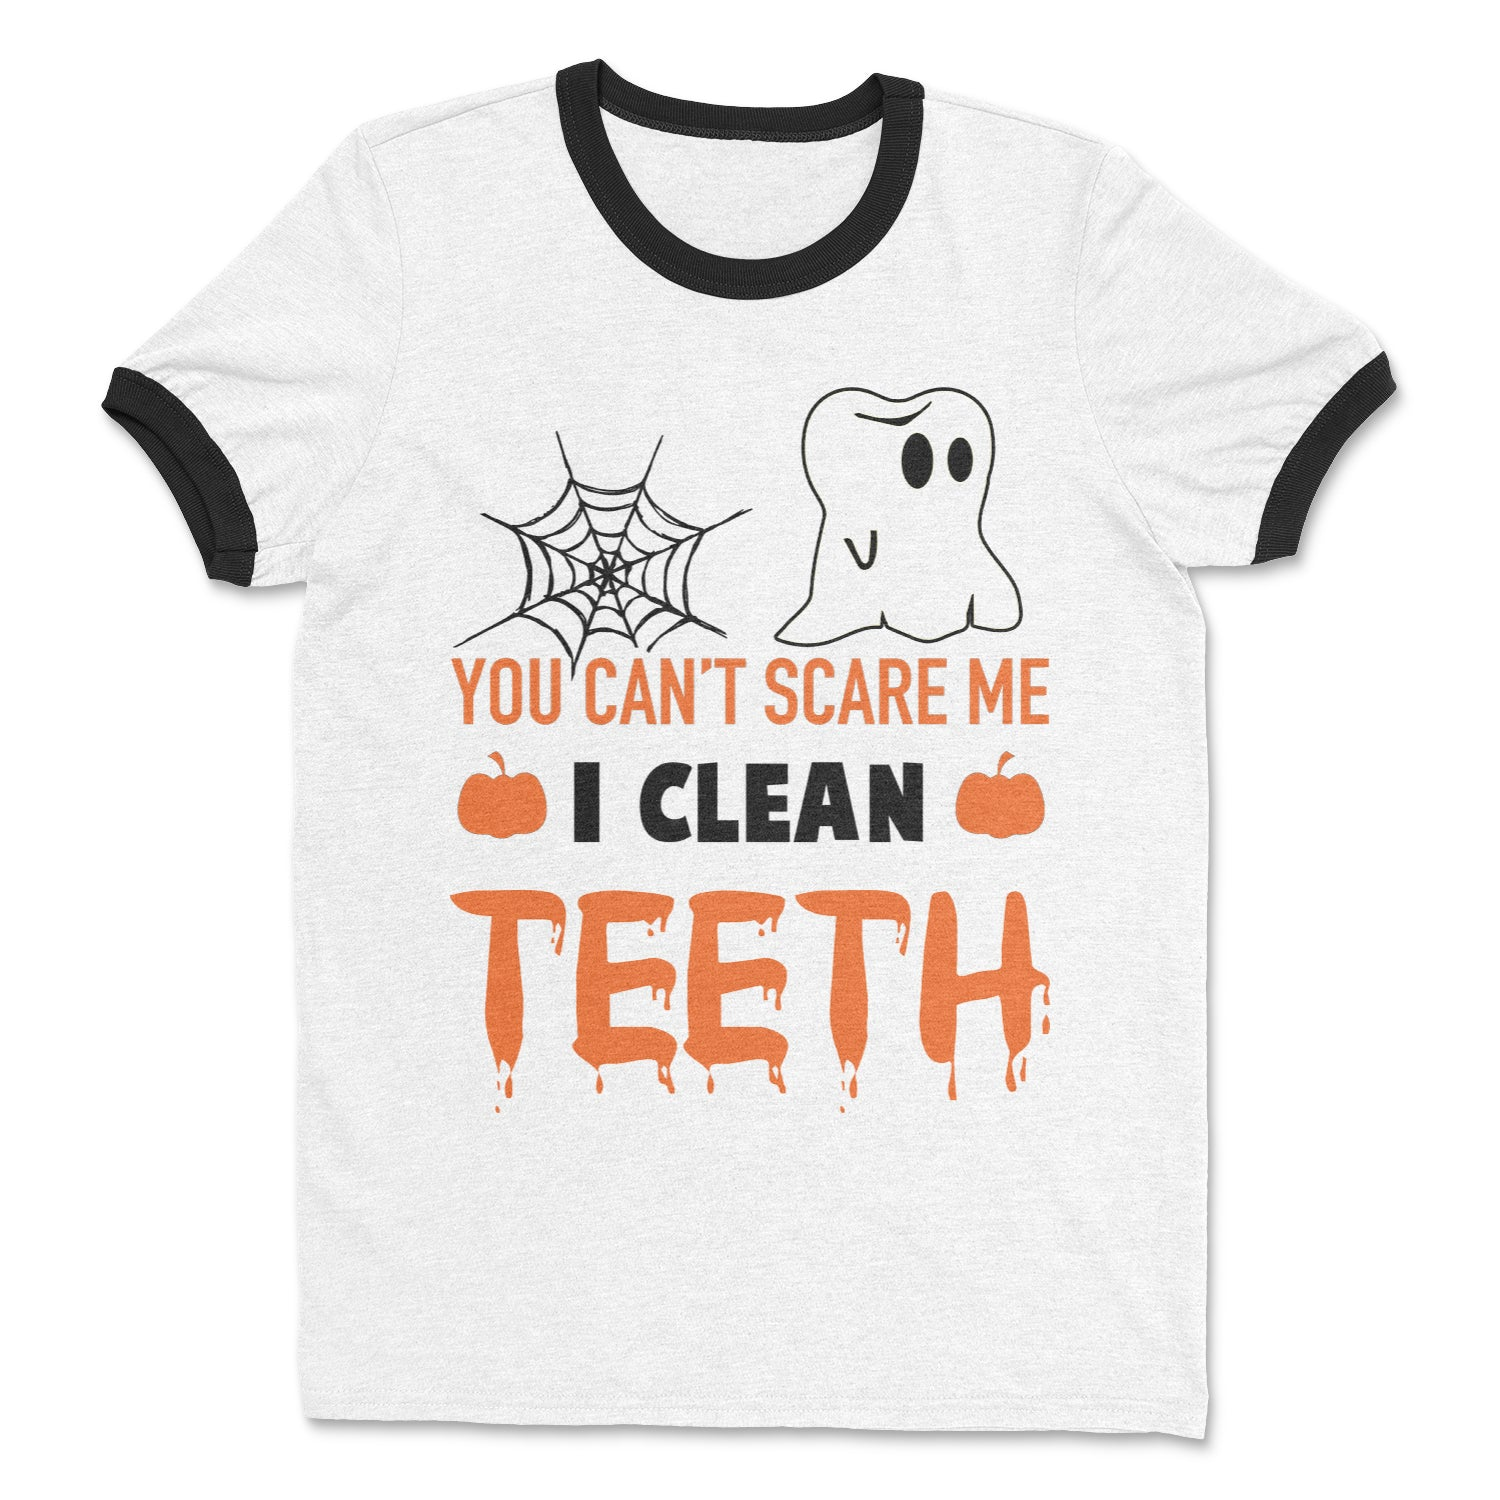 You Can't Scare Me I Clean Teeth Ringer Tee